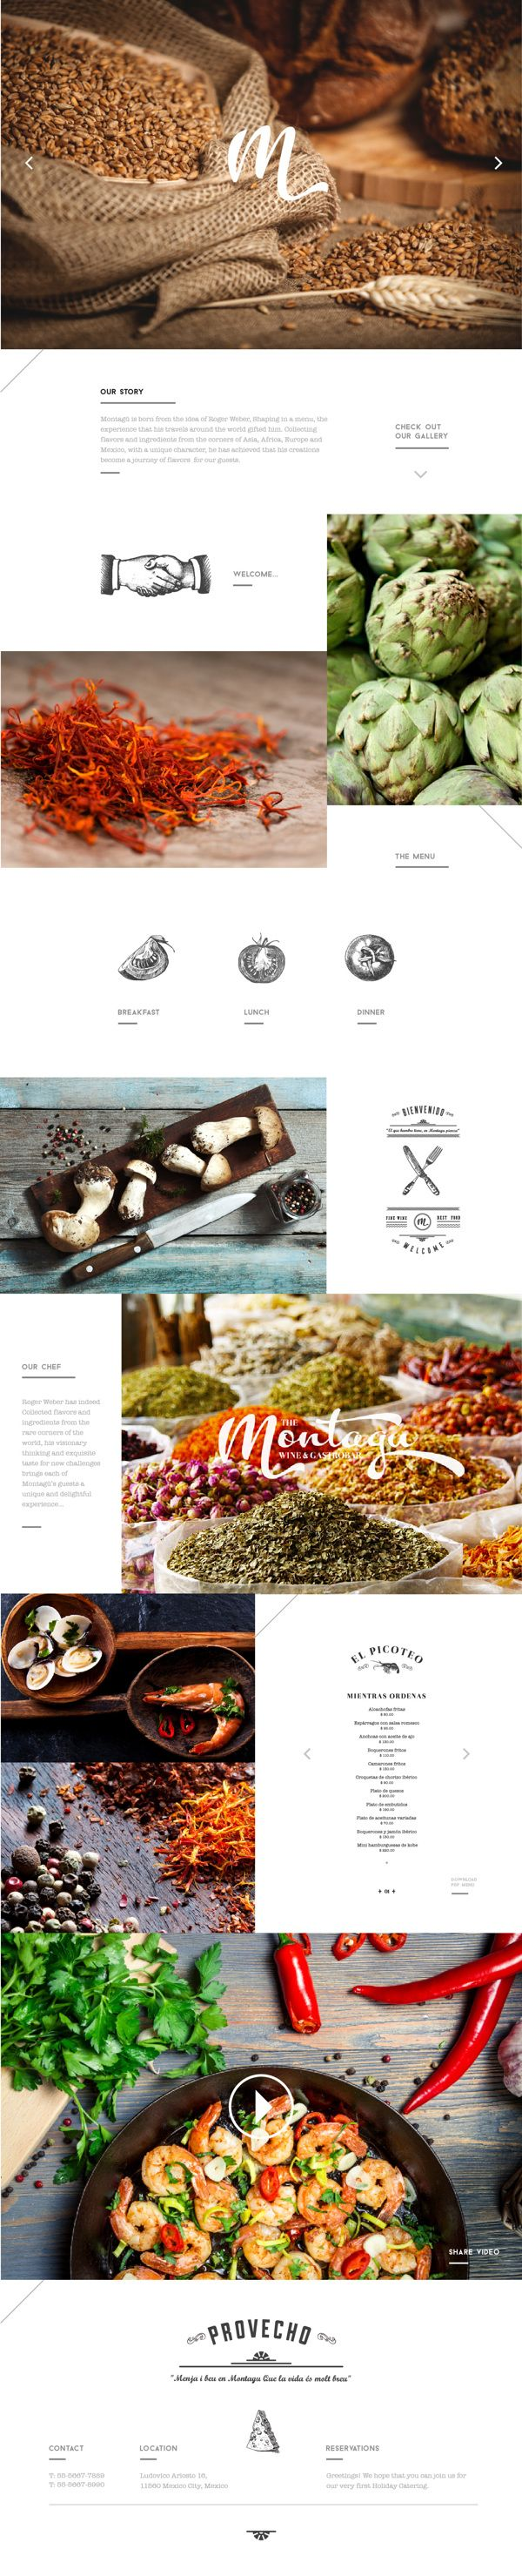 Montagü by Diego Leyva, via Behance | #webdesign #it #web #design #layout #userinterface #website #webdesign < repinned by www.BlickeDeeler.de | Visit our website www.blickedeeler.de/leistungen/webdesign